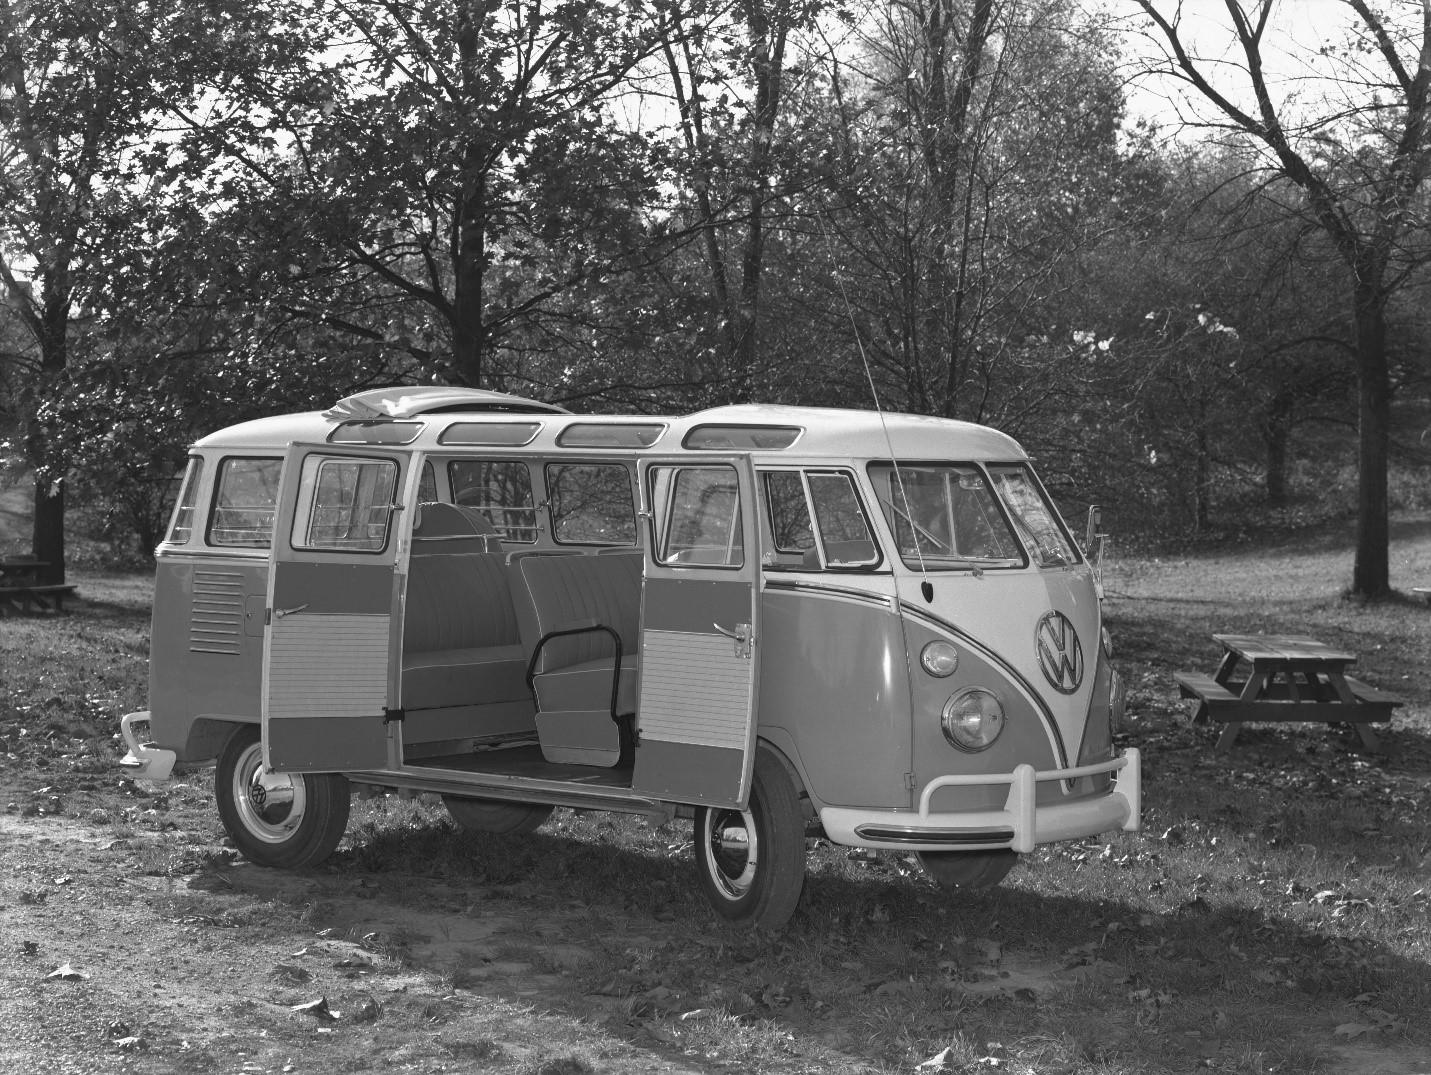 The VW 23-window bus was a favorite of ski bums and hippies. Now, it's a highly sought after collectible.